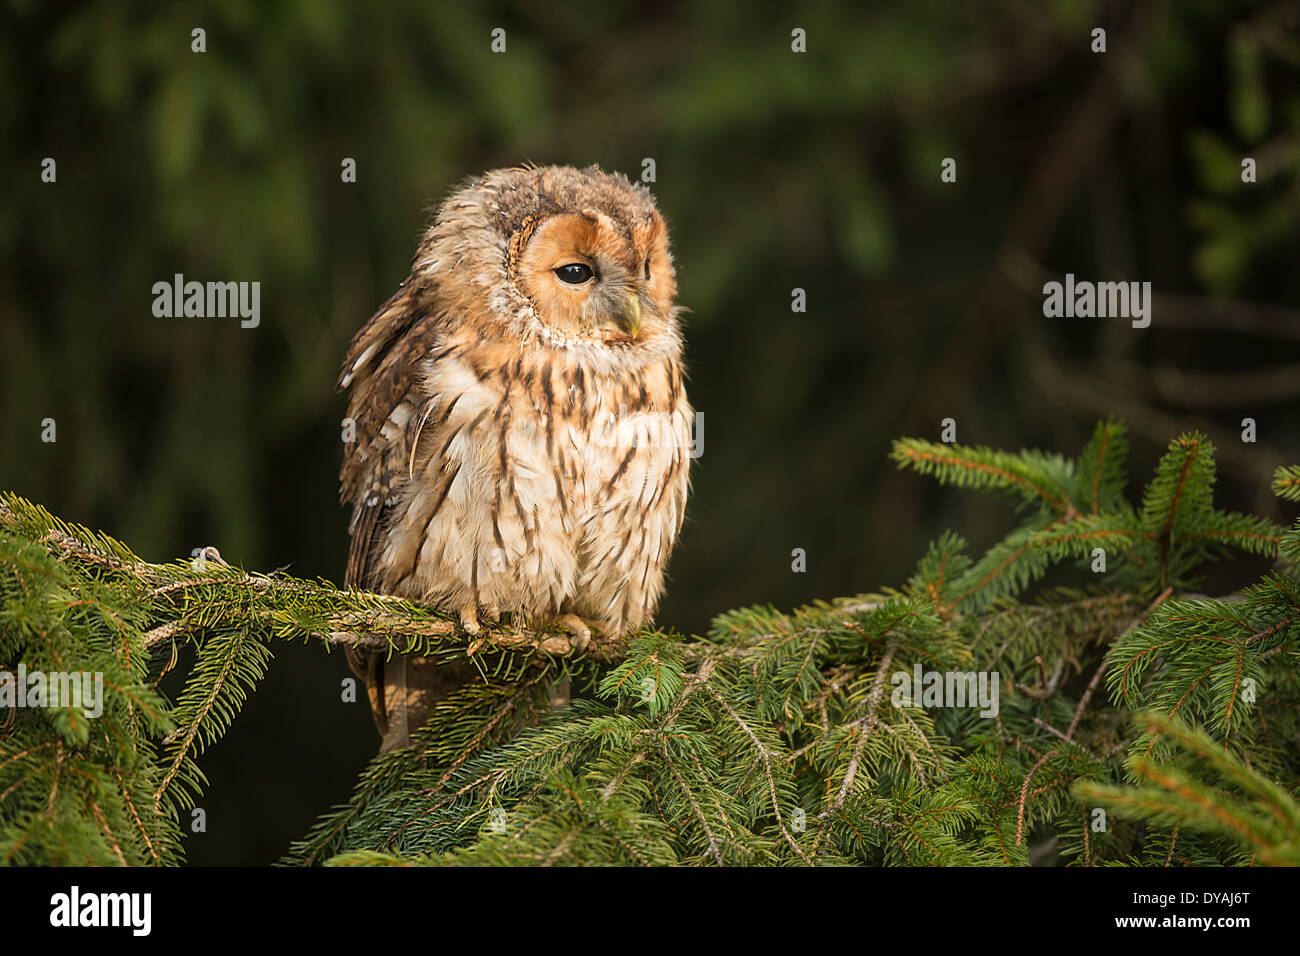 Tawny Owl (Strix aluco) in a Fir Tree (Abies) - Stock Image